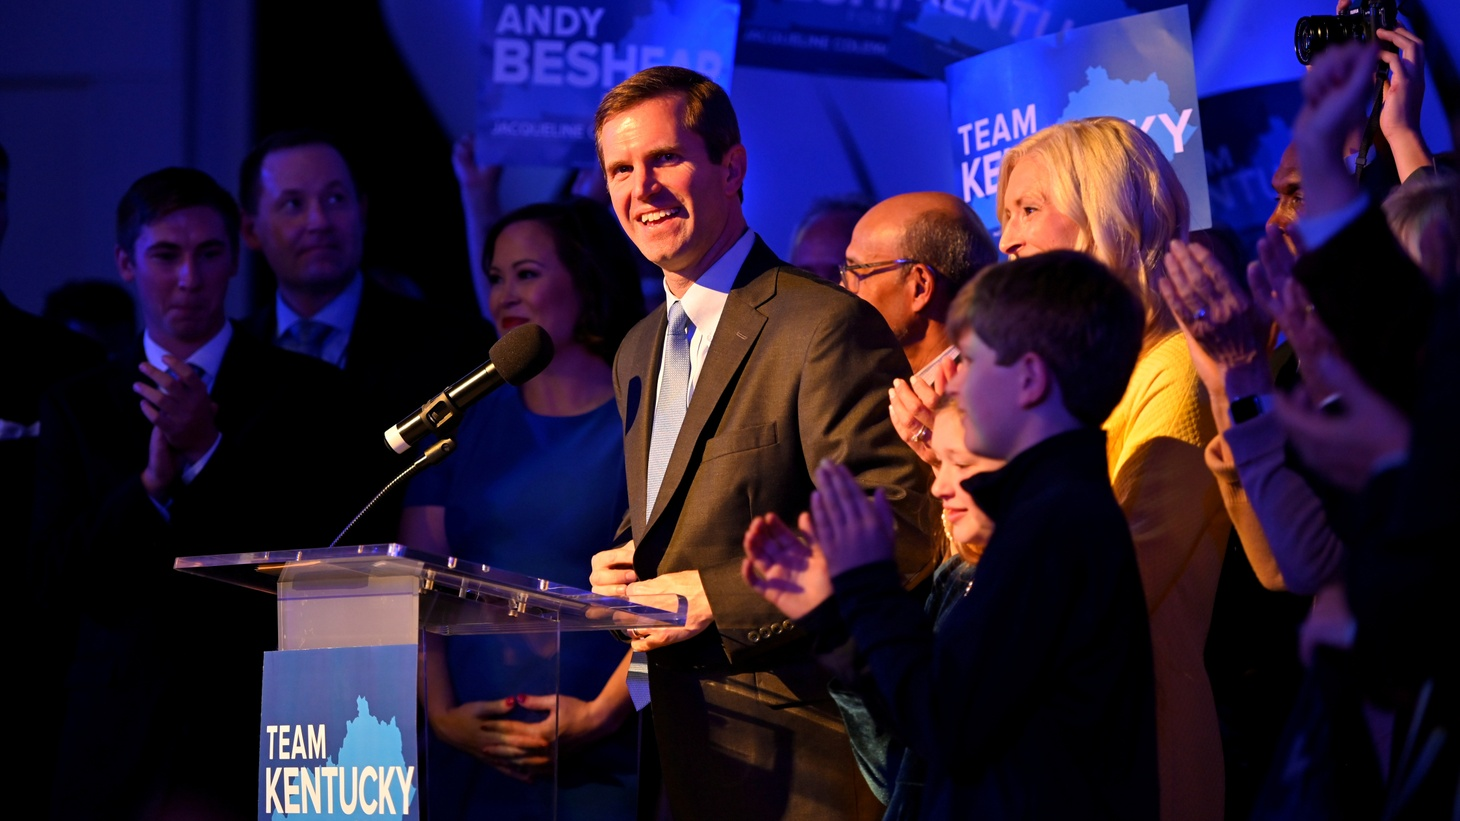 Kentucky's Attorney General Andy Beshear, running for governor against Republican incumbent Matt Bevin, reacts to statewide election results at his watch party in Louisville, Kentucky, U.S. November 5, 2019.